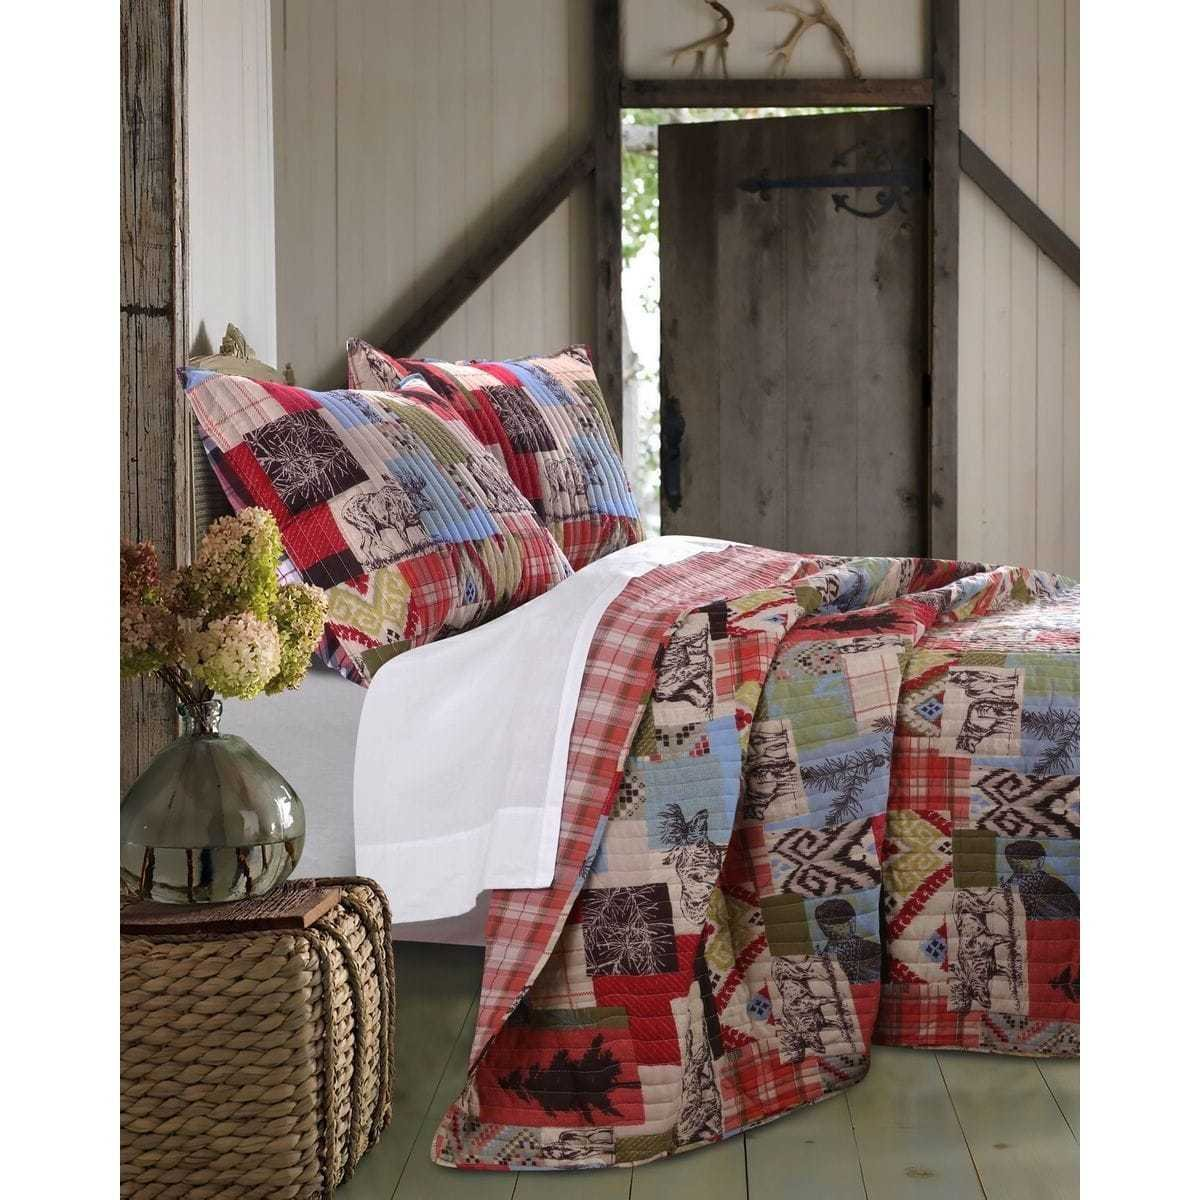 PH 3 Piece Multi Orange Nature Plaid Nature Full Queen Quilt Set, Light Blue Ivory Red Green Moose Bears Pine Trees Primitive Art Reversible Adults Bedding Master Bedroom Vintage Western, Polyester